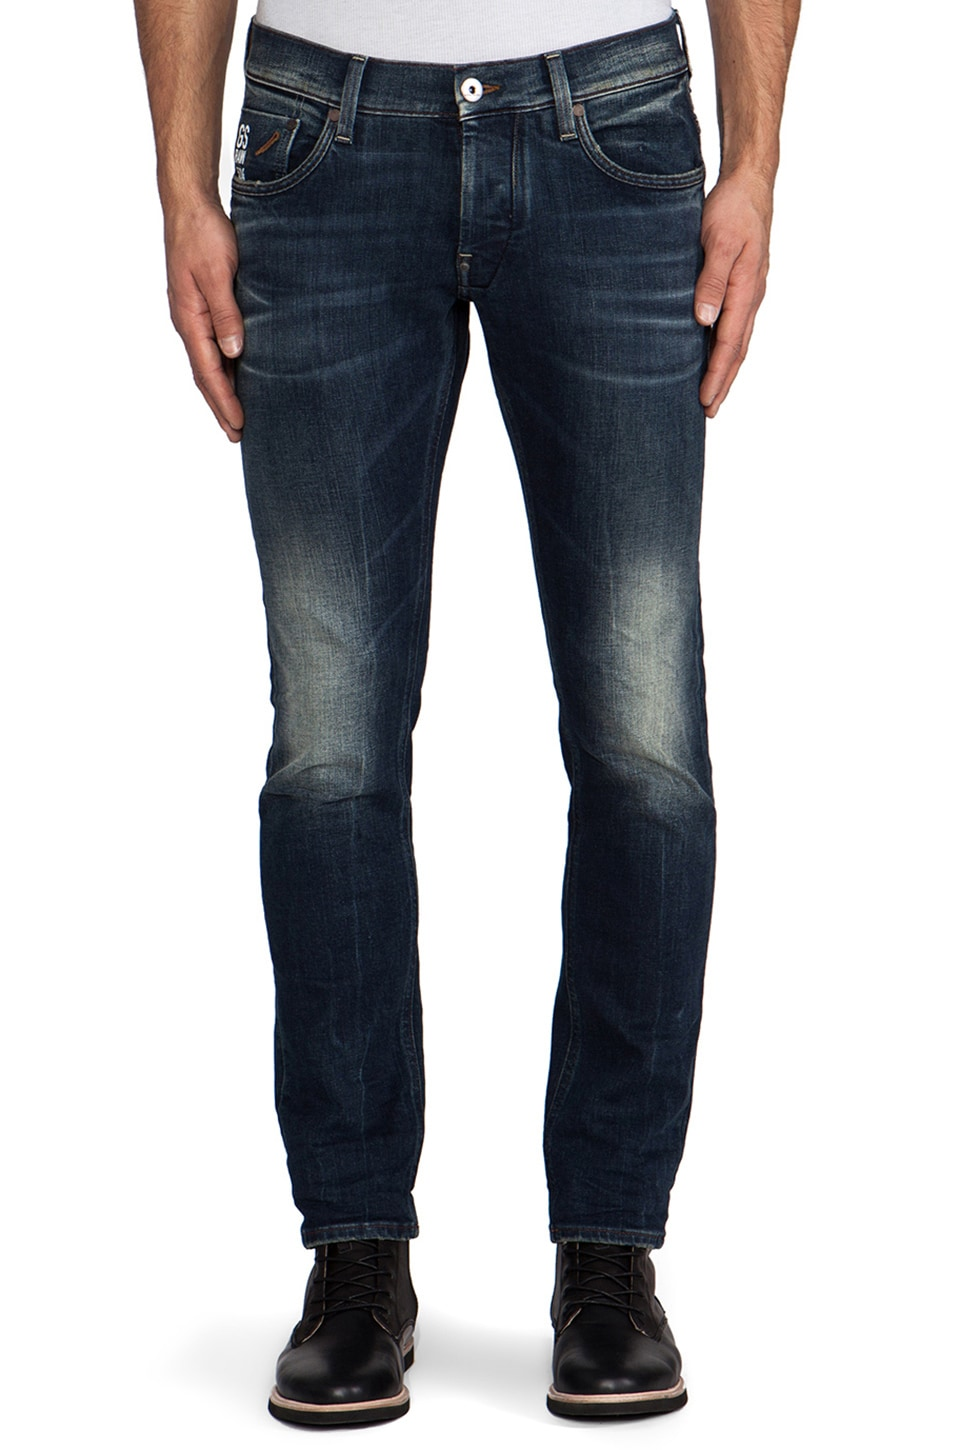 G-Star Defend Super Slim in Comfort Stow Denim Medium Aged